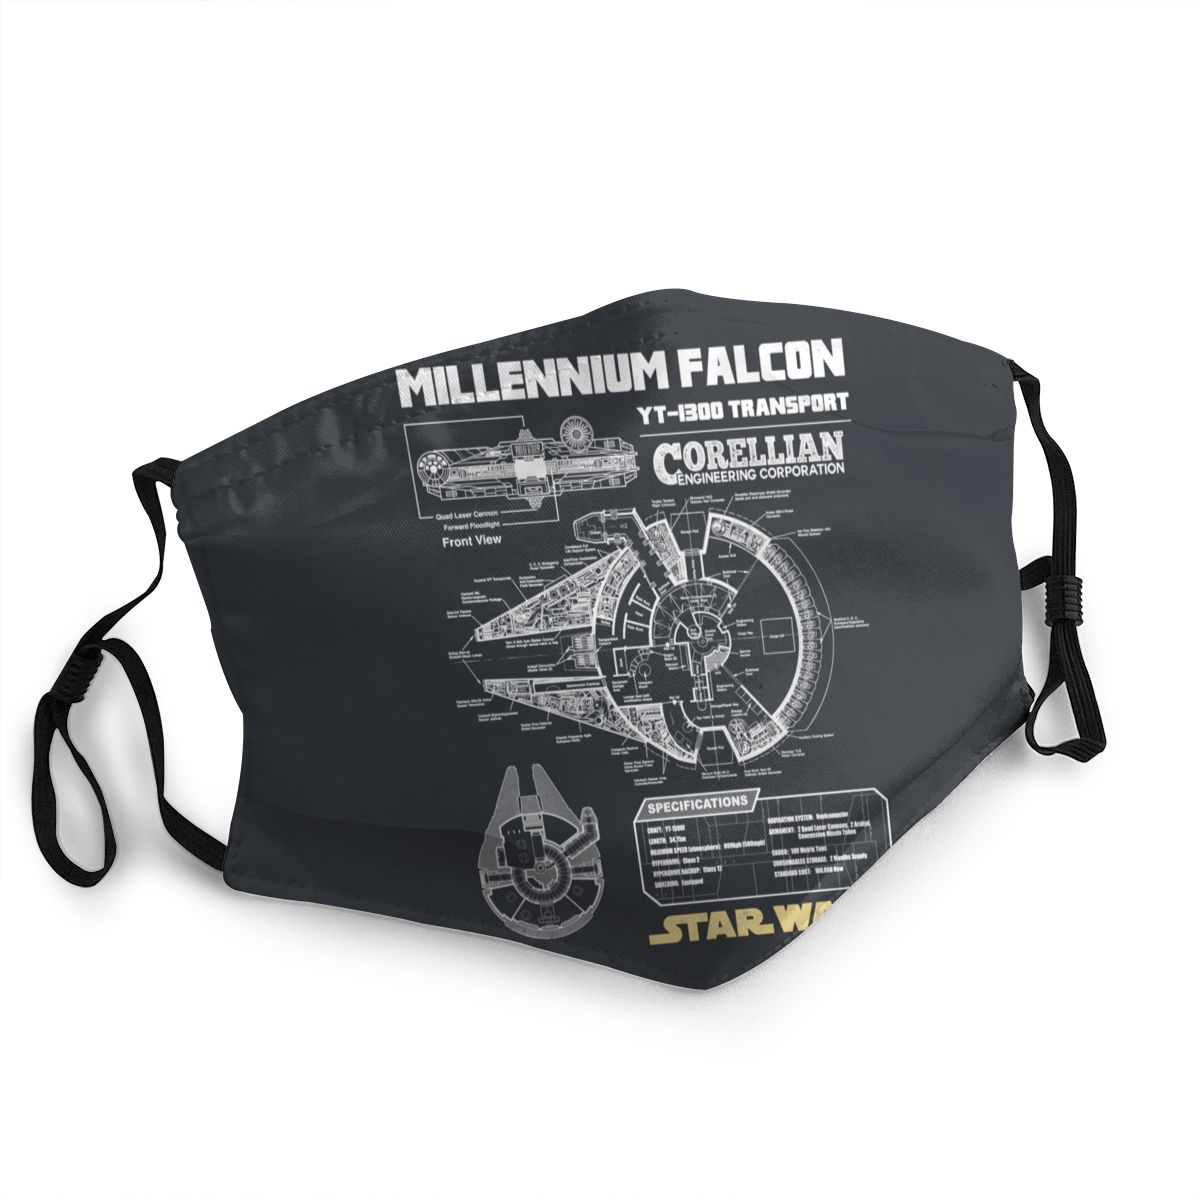 Star Wars Millennium Falcon Schematics Unisex Face Mask Anti-Bacterial Dustproof Mask Protection Cover Respirator Mouth Muffle